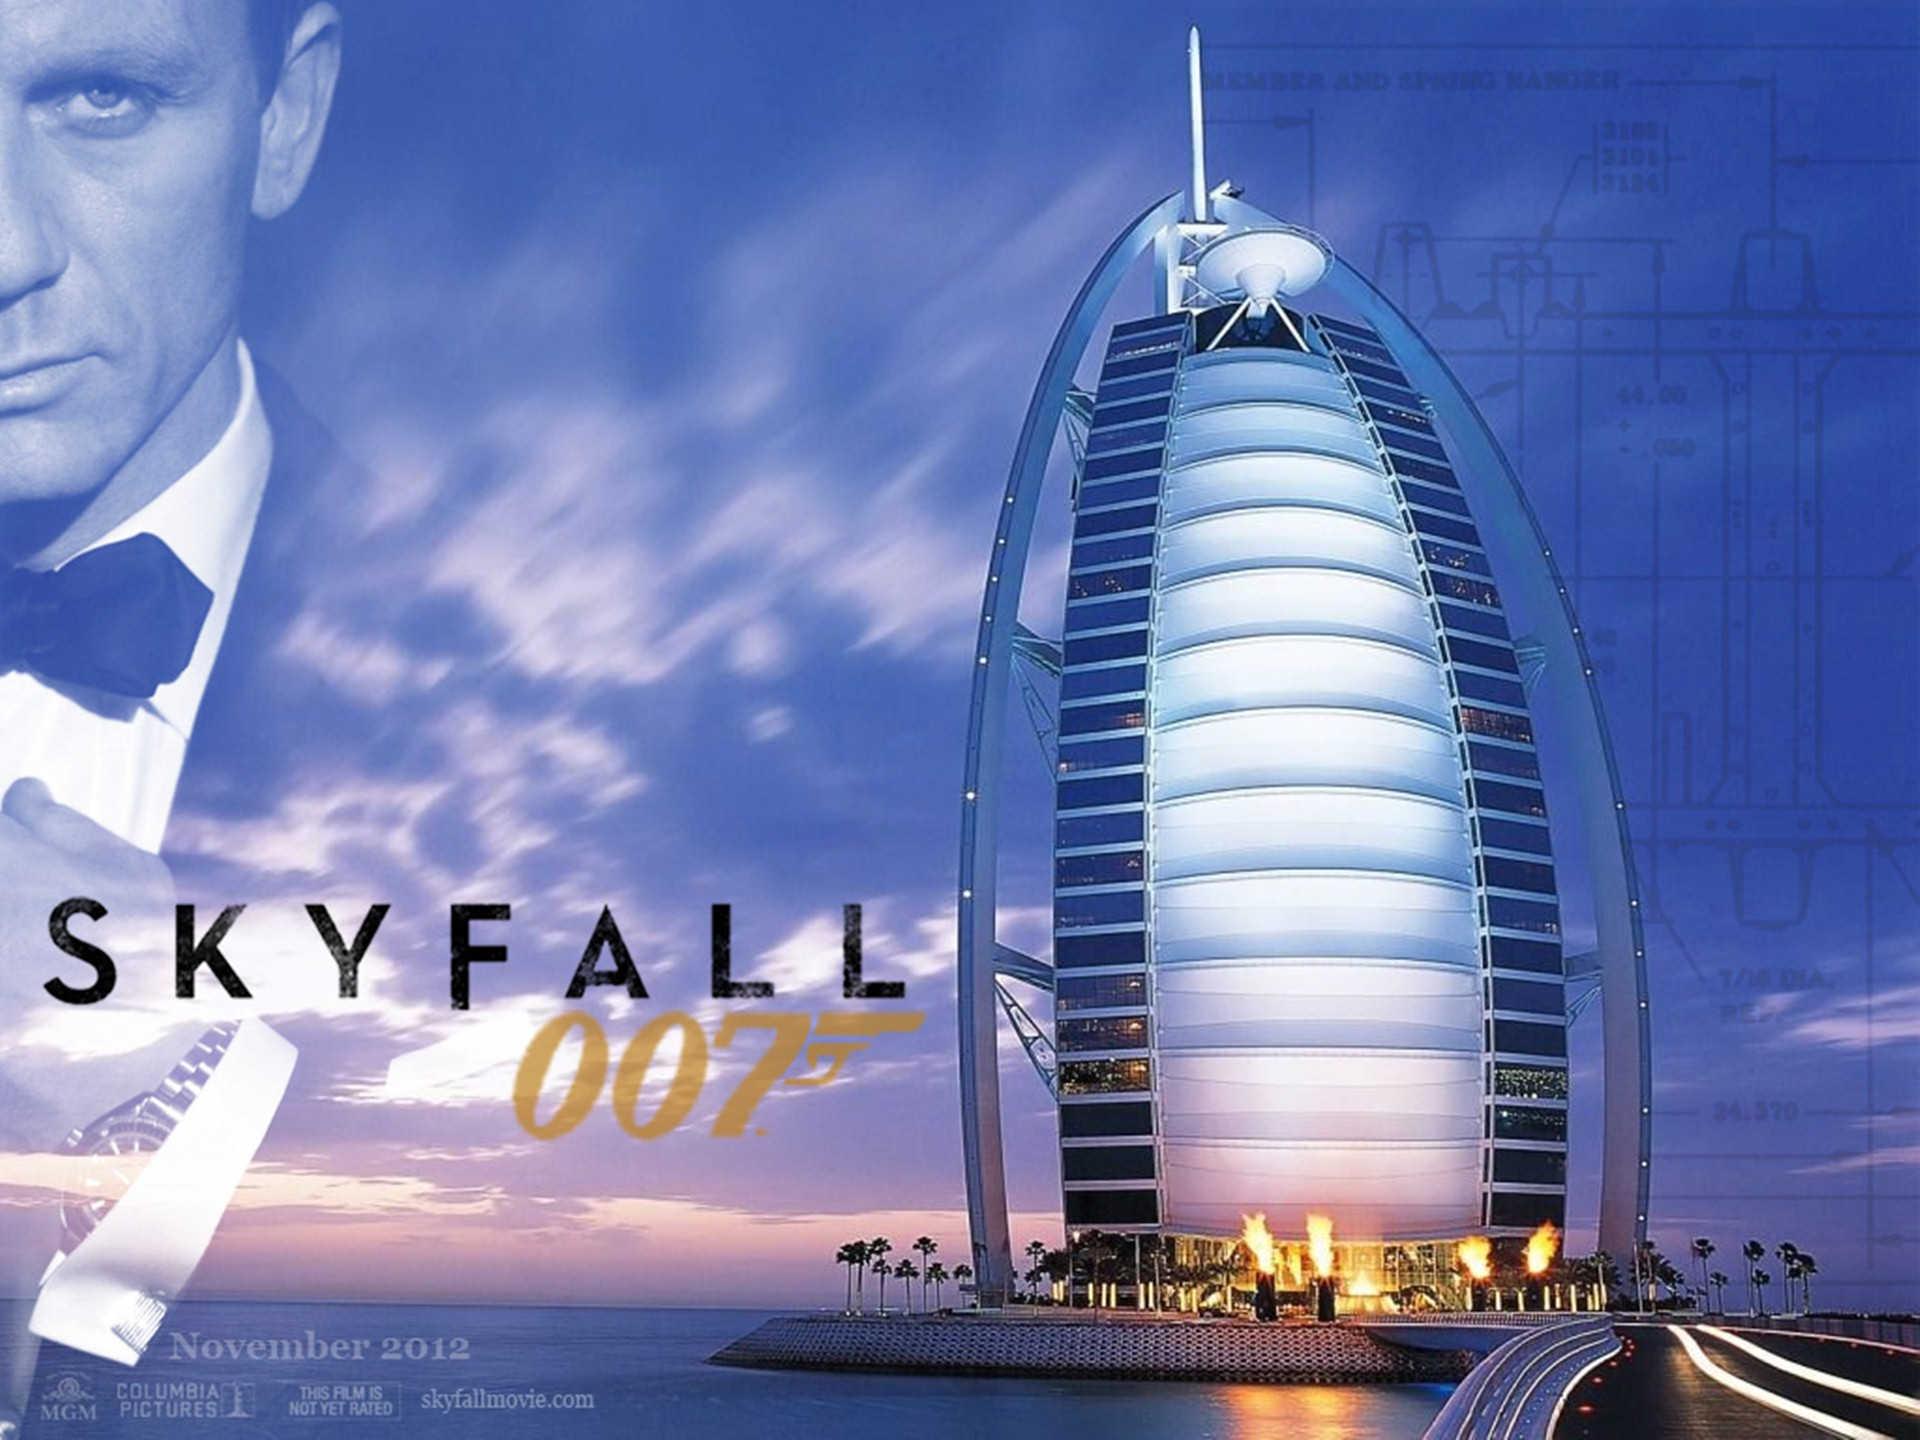 Skyfall 007 Movie Poster HD Wallpaper   Stylish HD Wallpapers 1920x1440